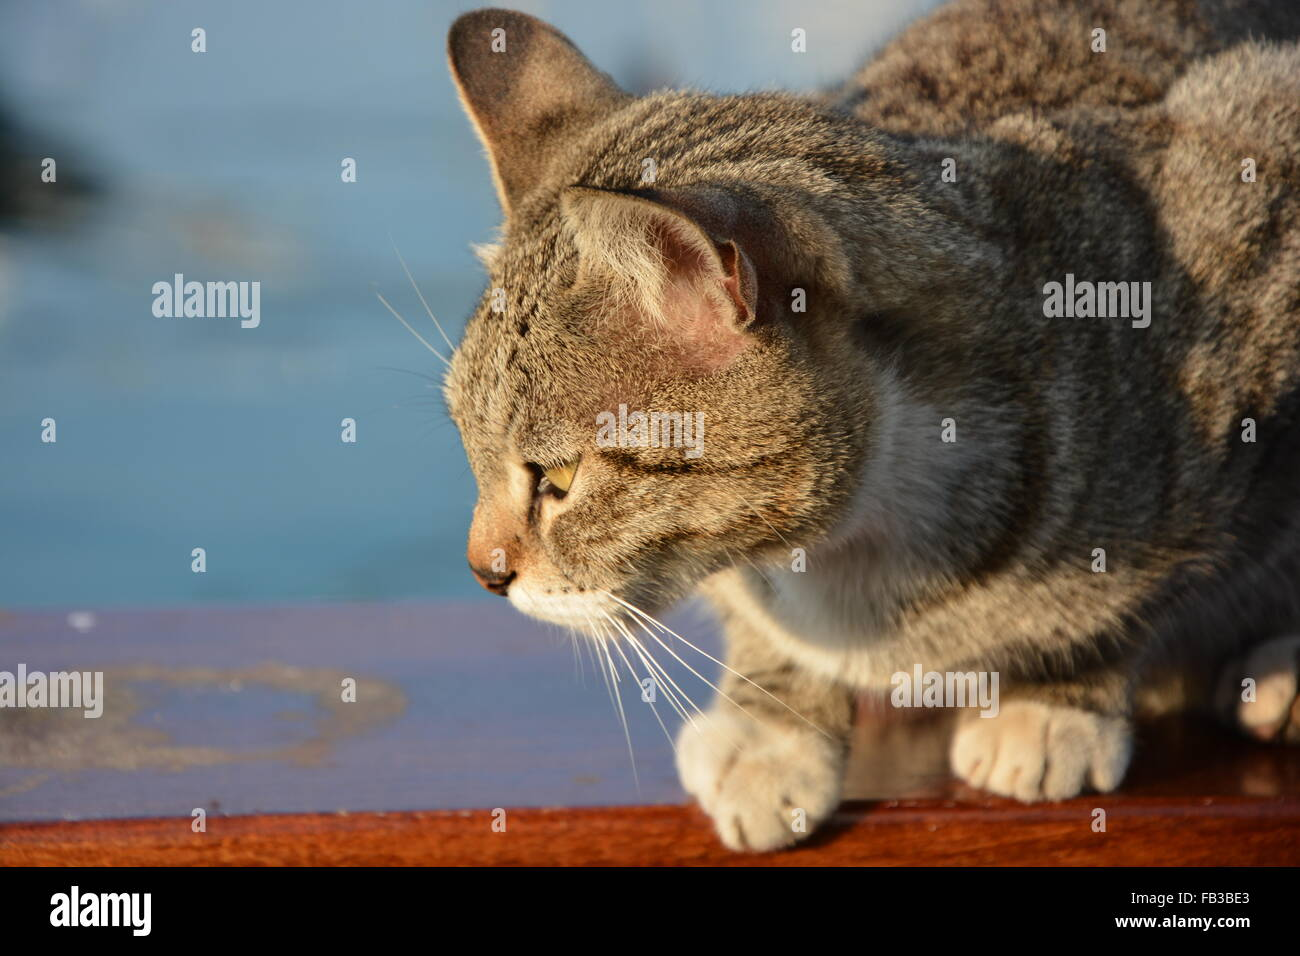 That angry Cat - Stock Image